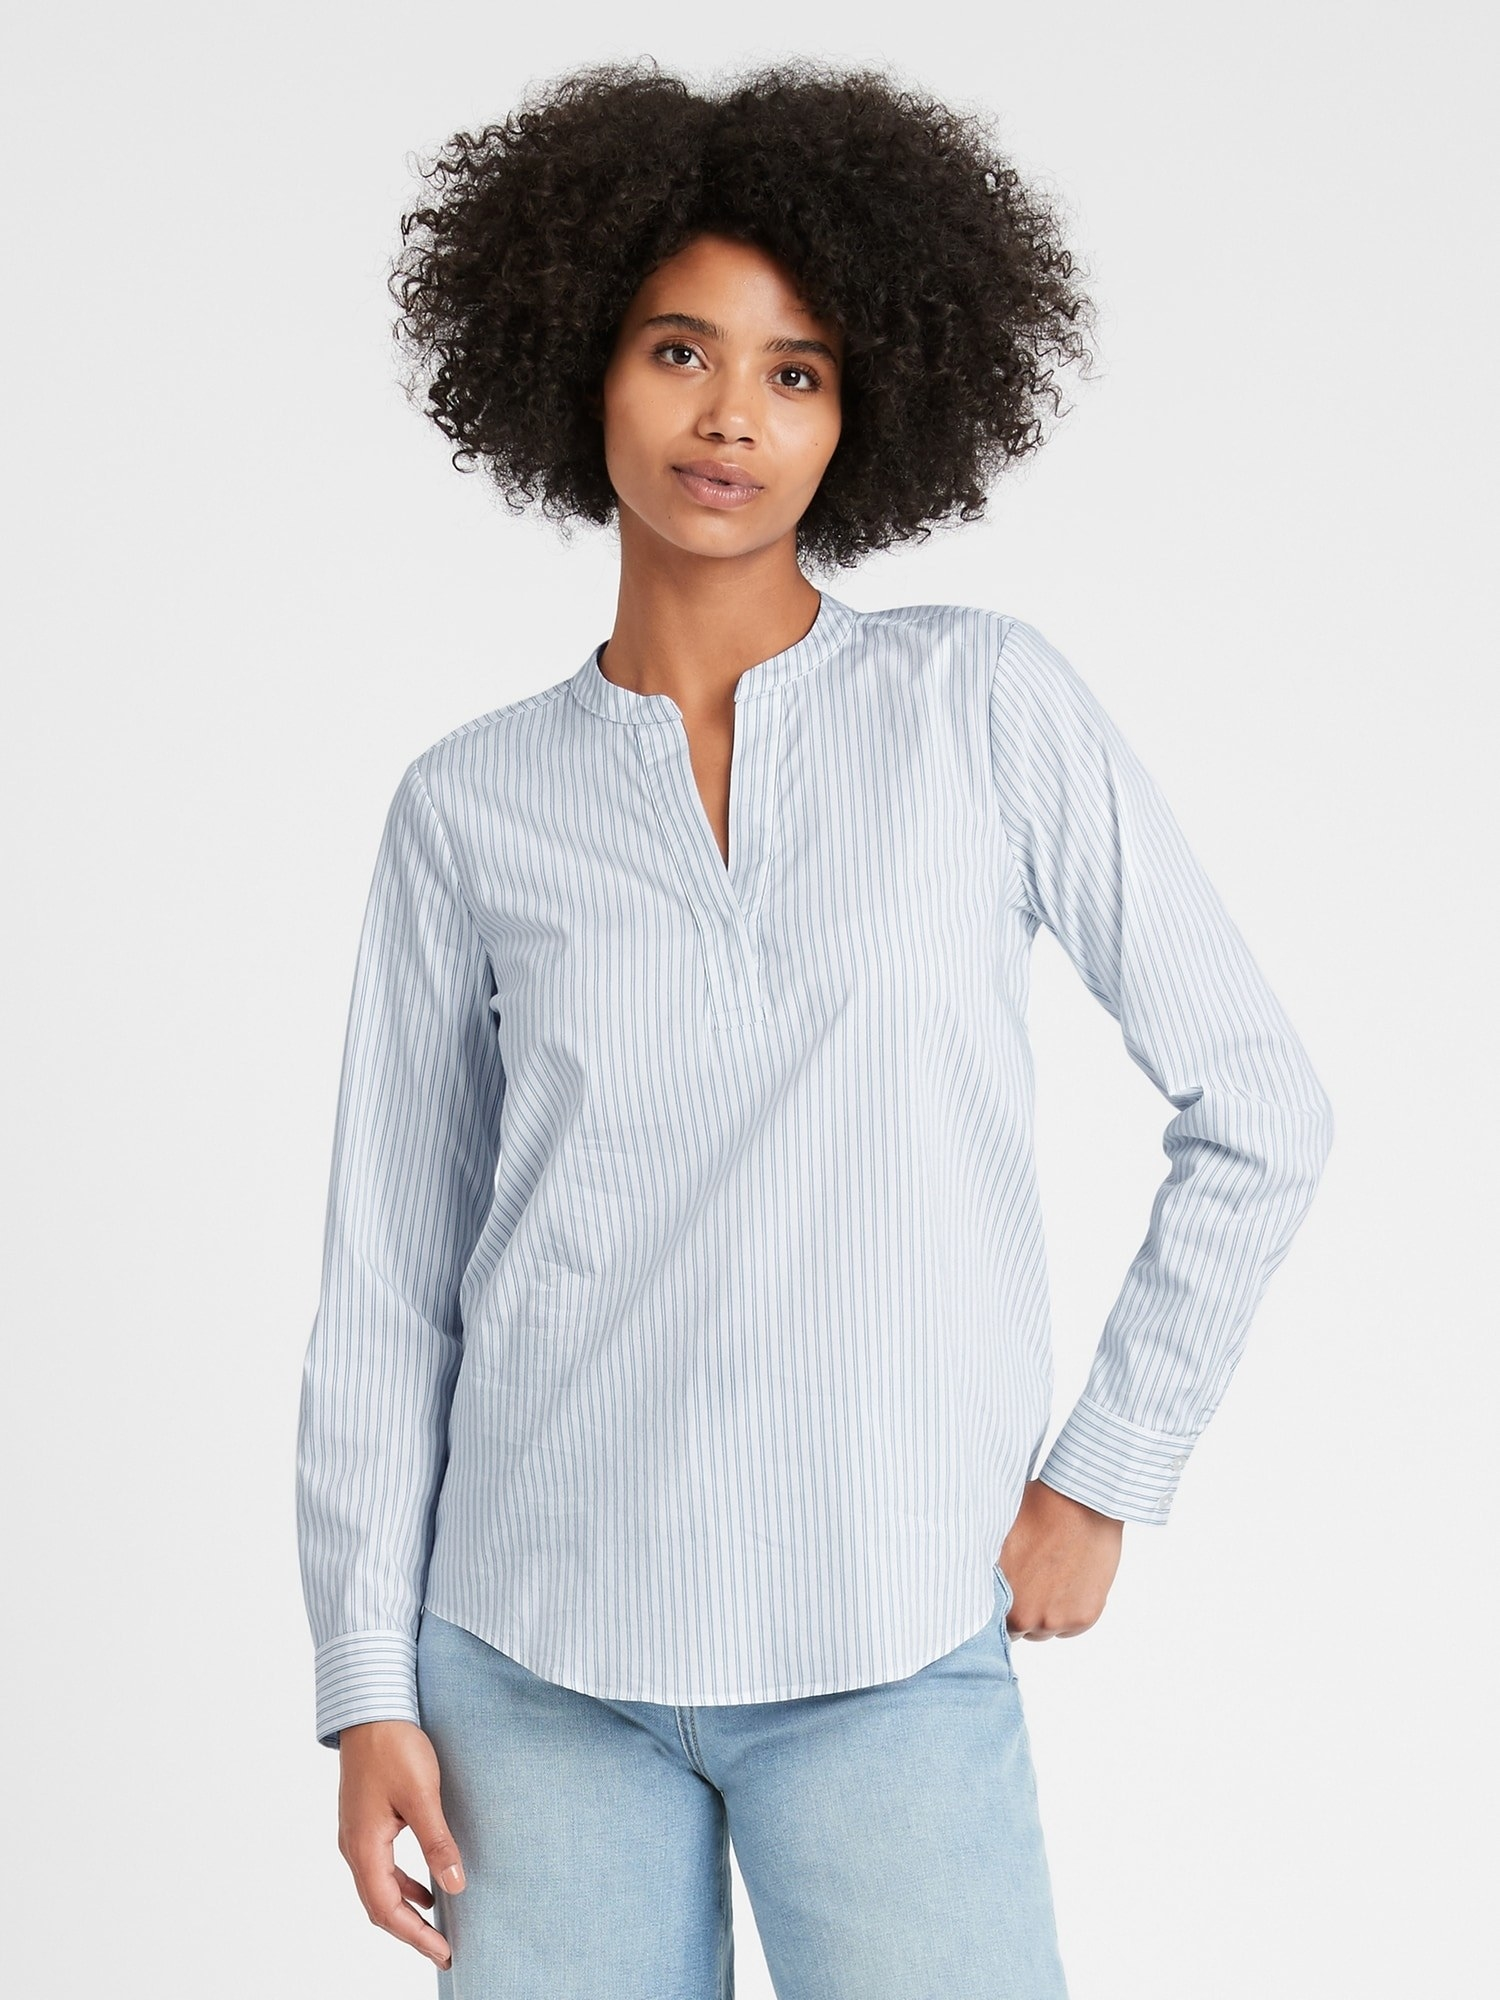 Model wearing the notch-neck rounded-hem shirt with black and white vertical stripes